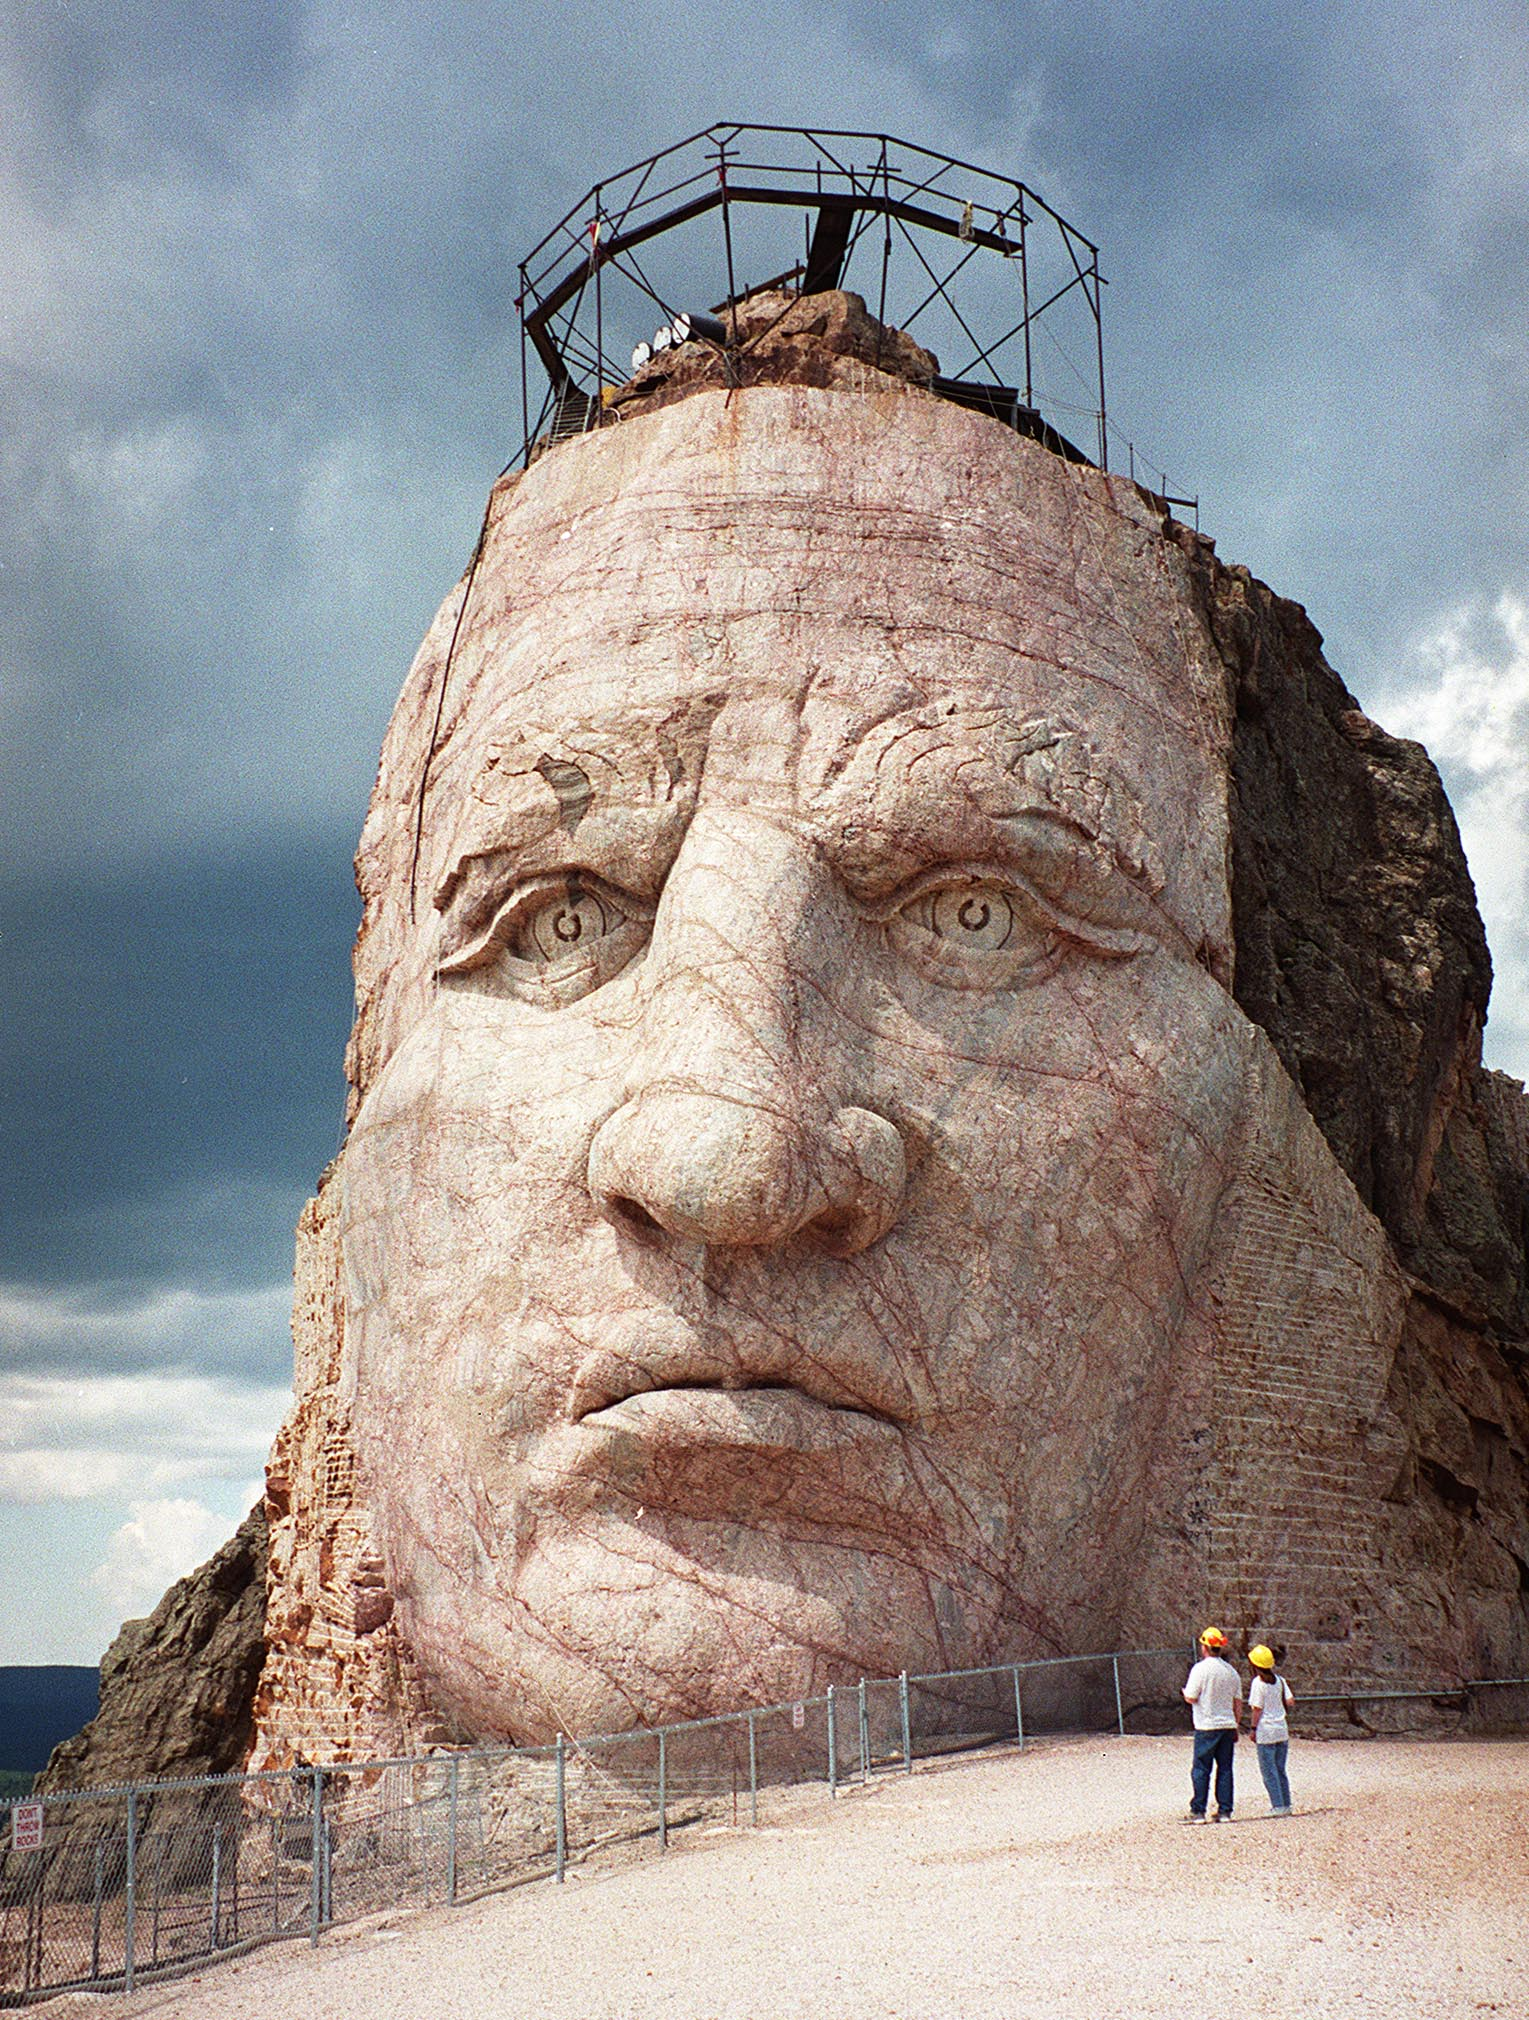 This August, 2001 photo shows the face of the Crazy Horse monument. Photo: Francis Temman/AFP Getty Images.